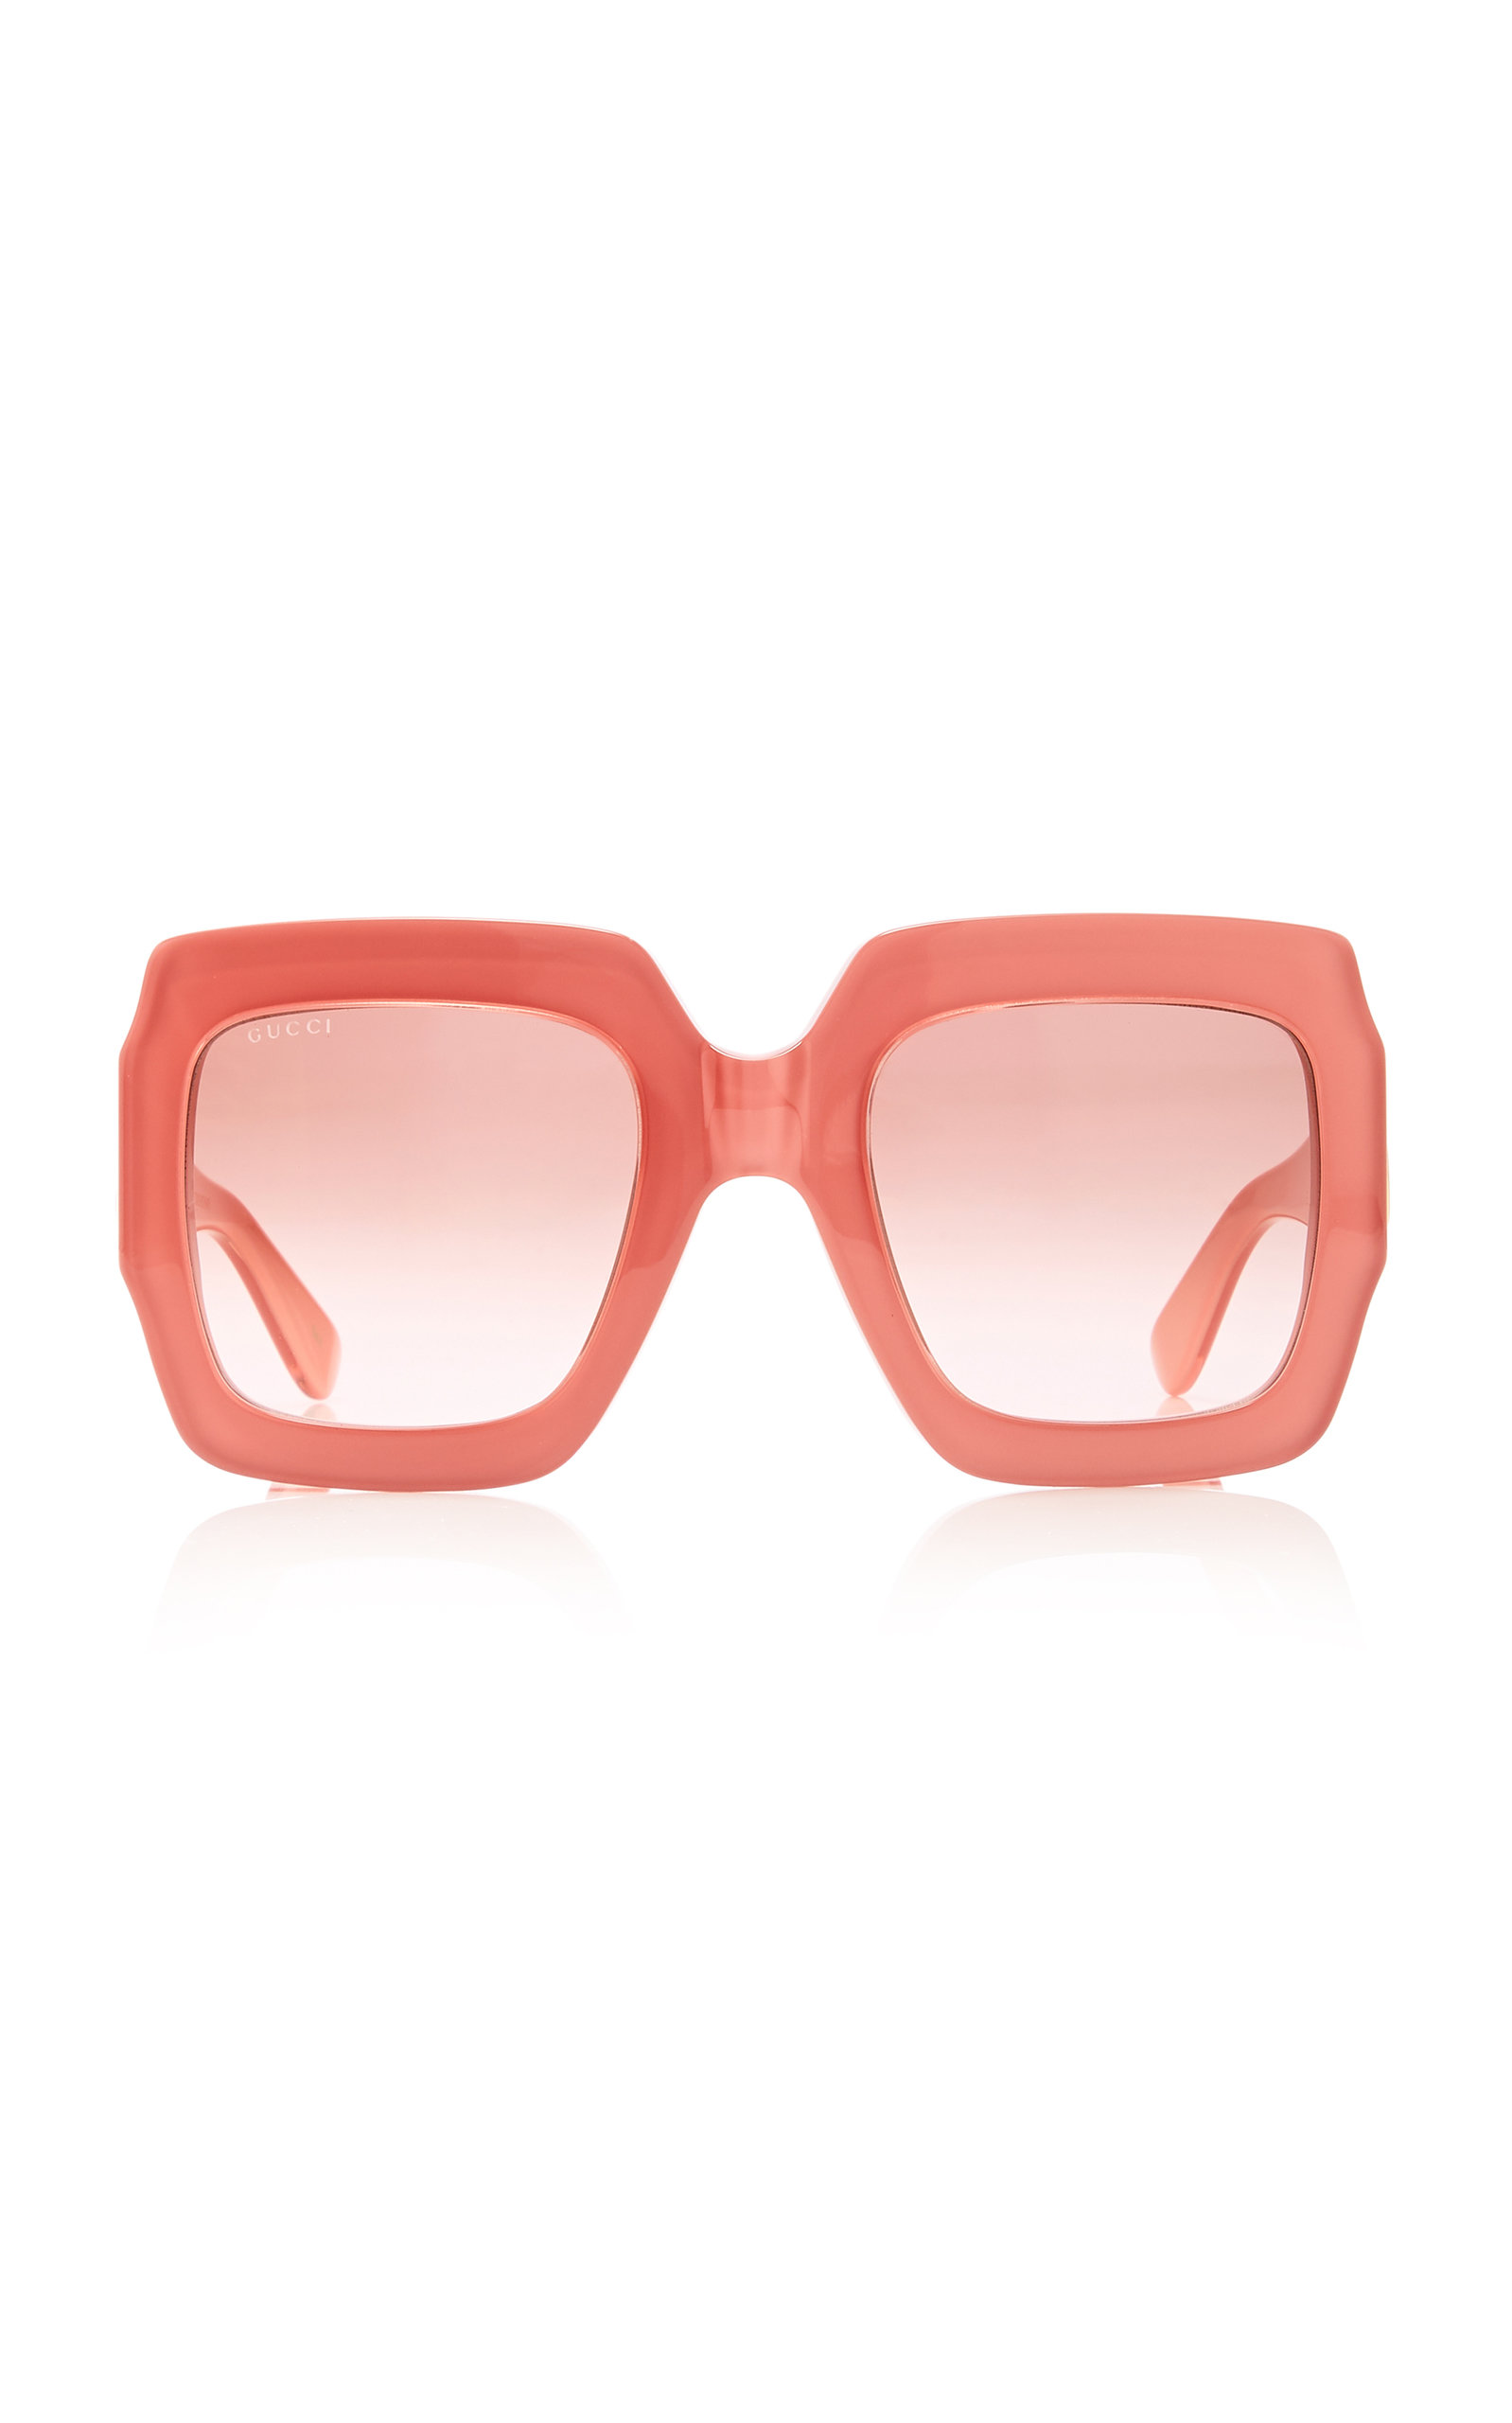 89eef7be2 Pop Web Acetate Square-Frame Sunglasses by Gucci | Moda Operandi